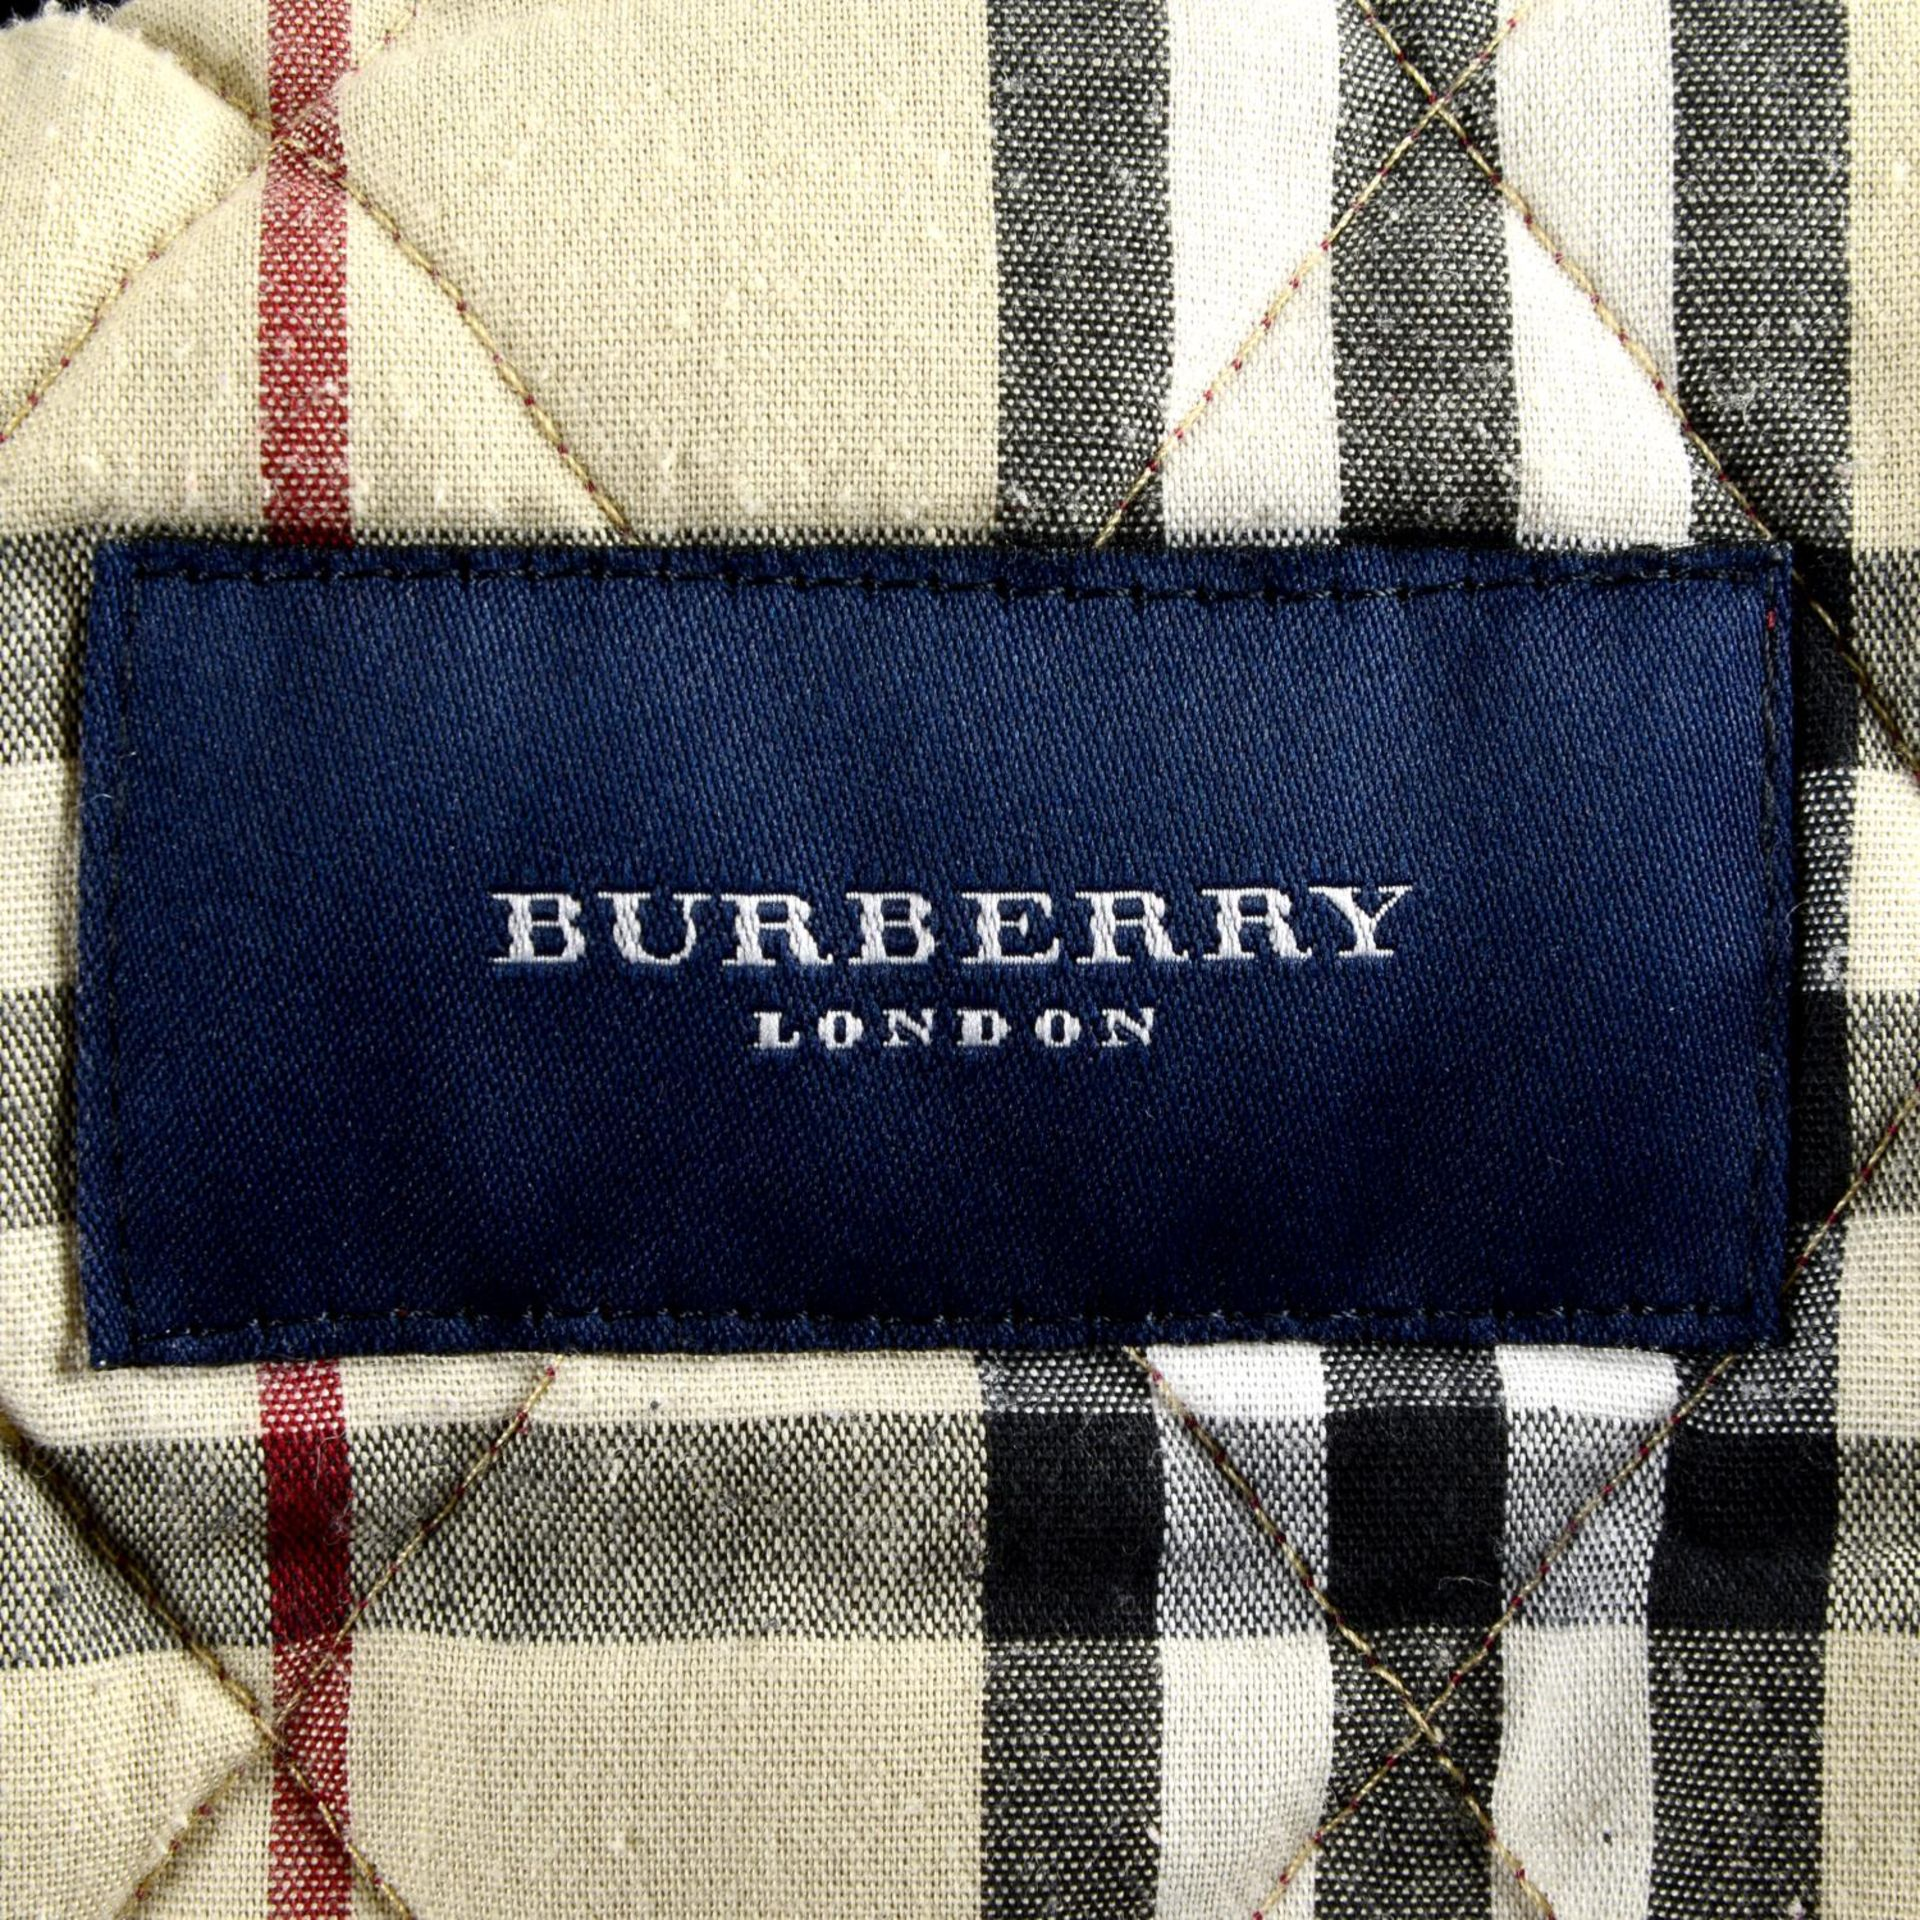 BURBERRY - a red quilted jacket. - Image 4 of 4